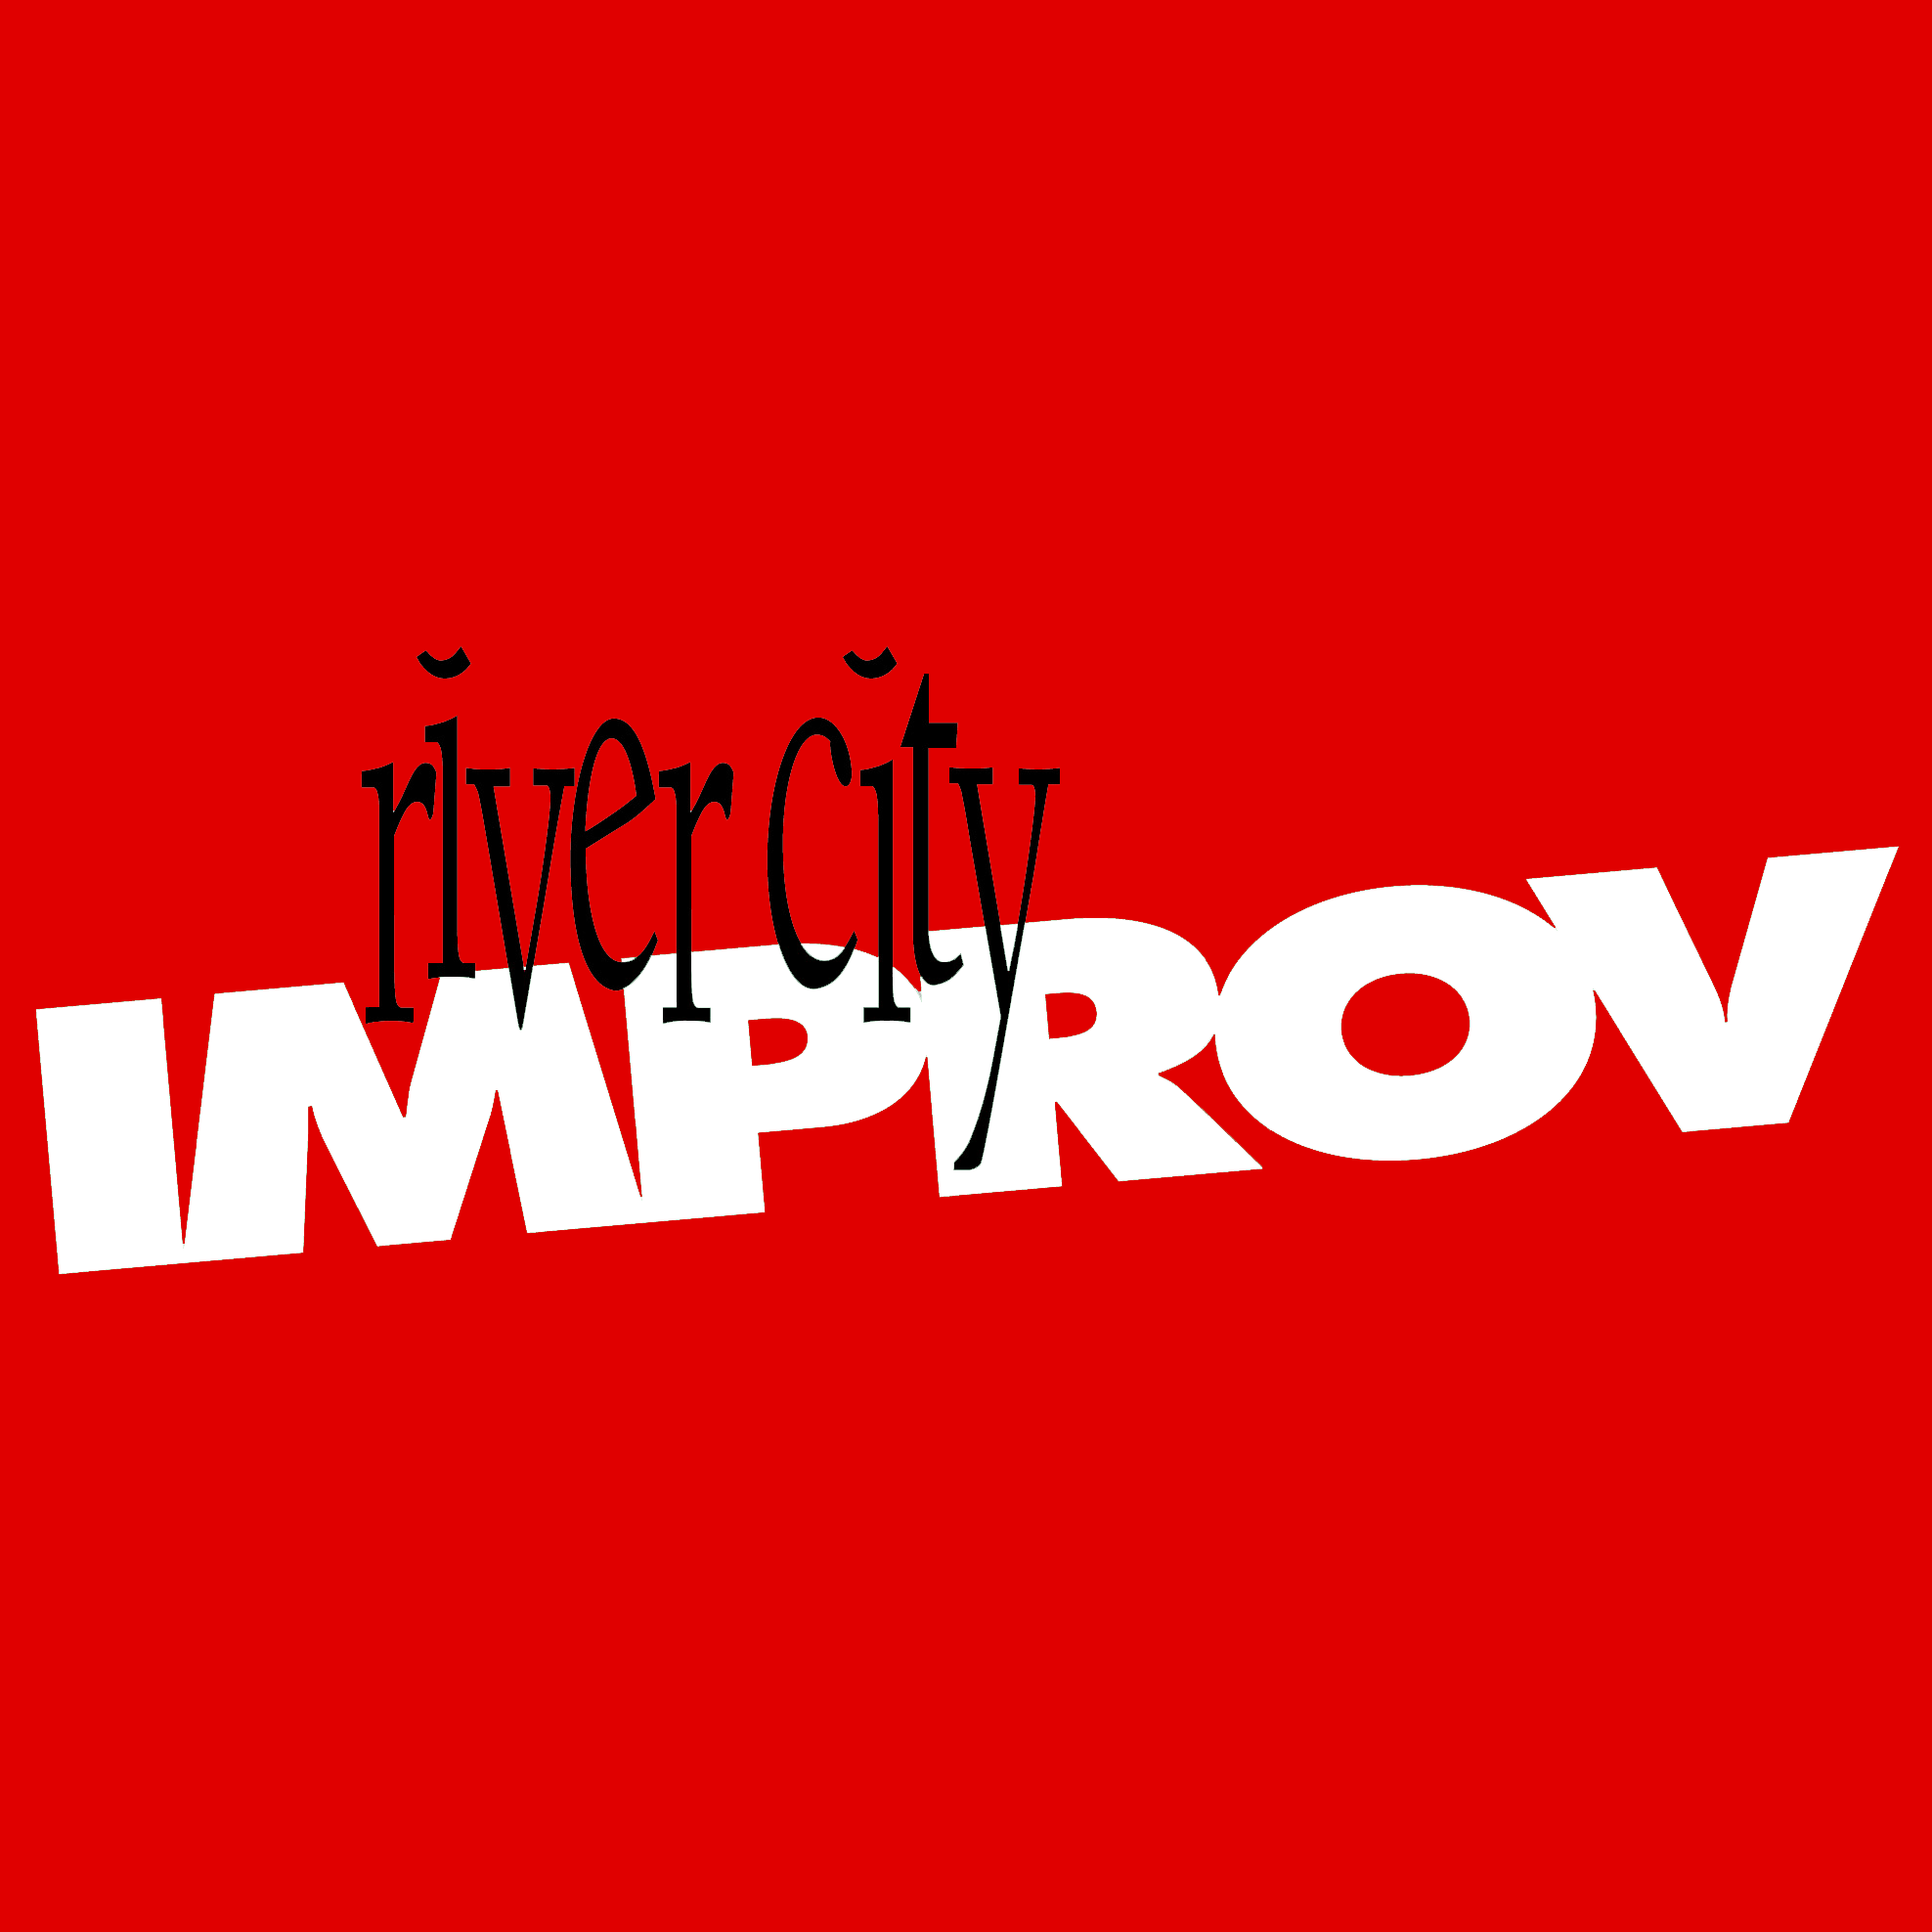 River City Improv